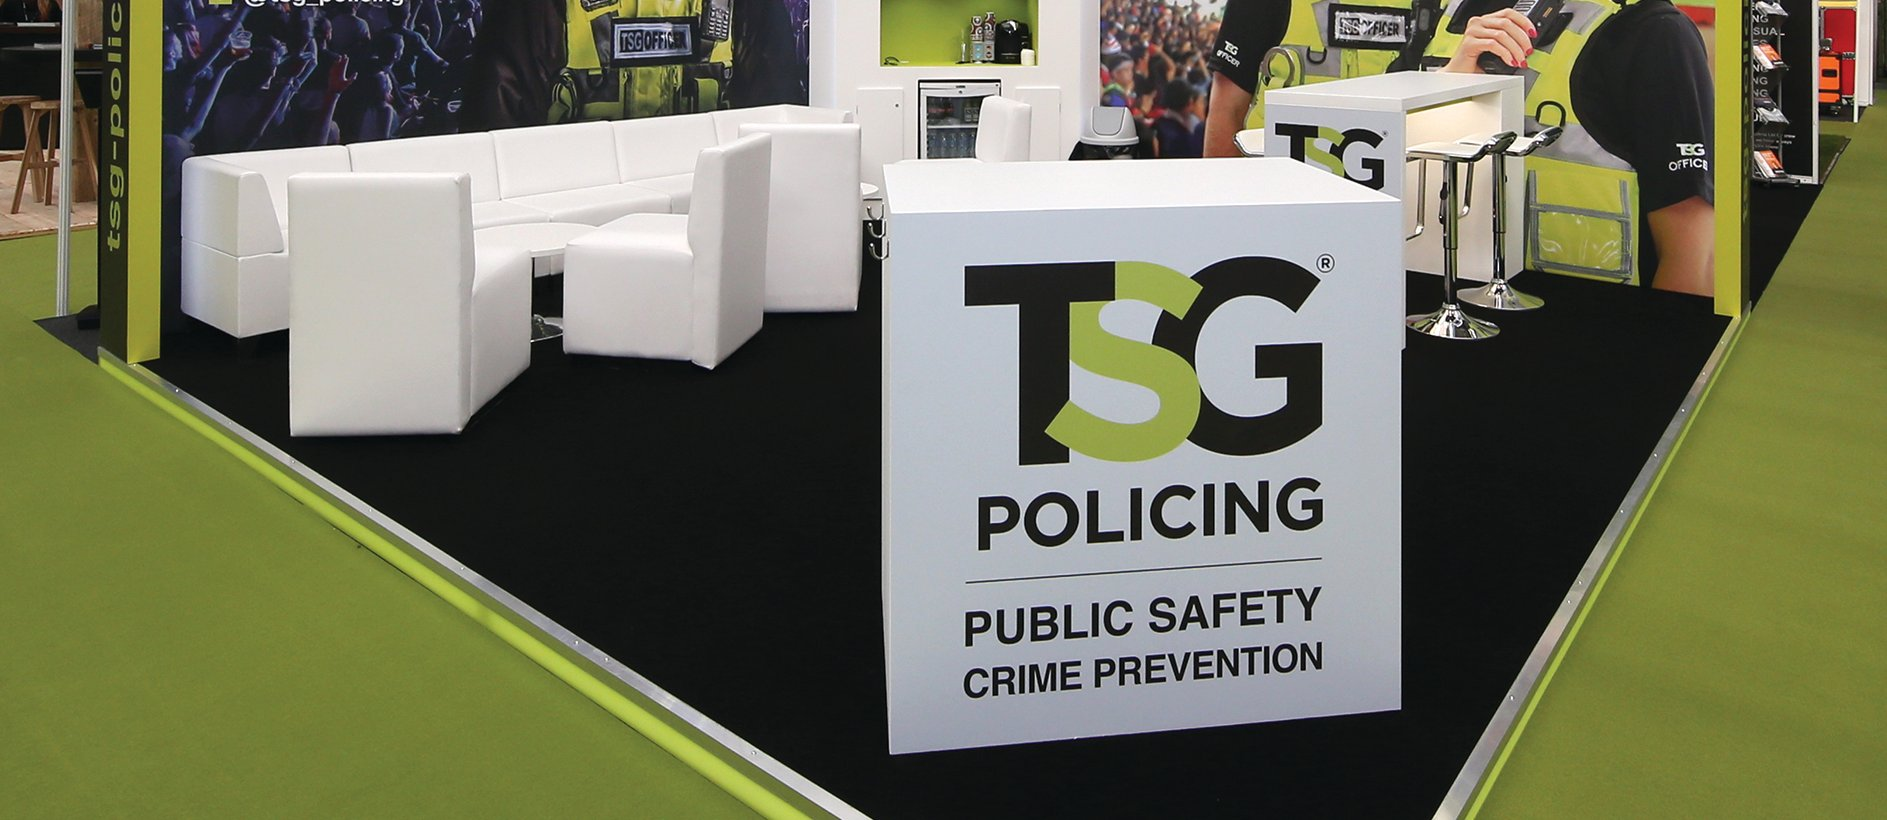 TSG policing branding and exhibition graphics